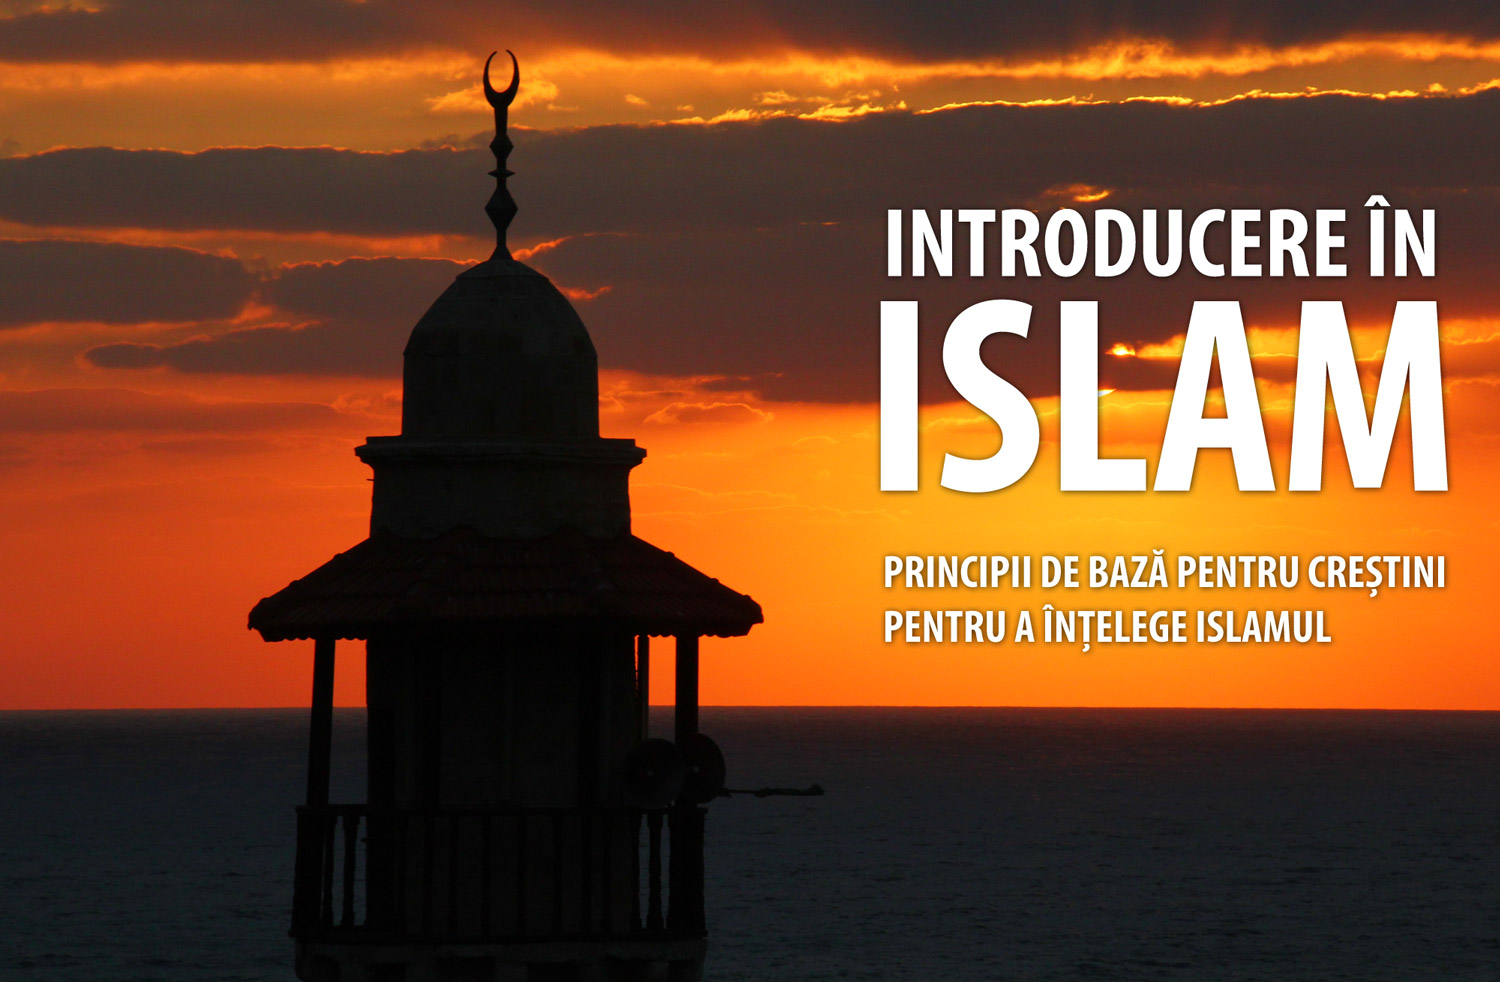 introducere in islam 1500